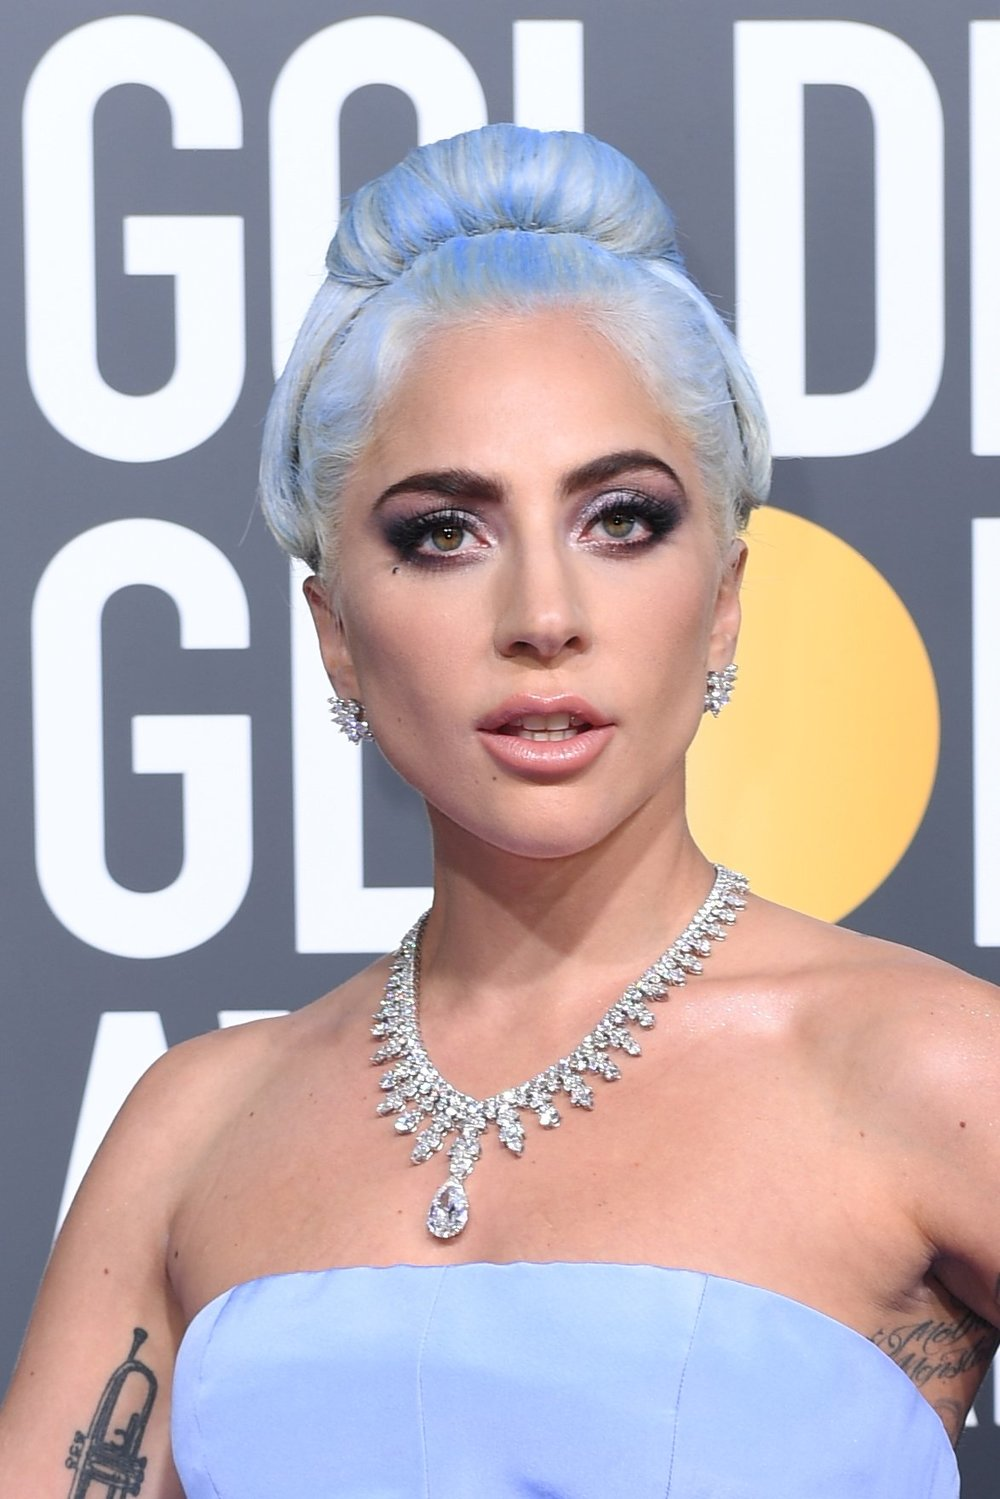 """Clad in voluminous Valentino, the style icon/superstar, Lady Gaga, made a statement in the Tiffany aurora necklace, a custom creation featuring 300 brilliant diamonds, including a 20-carat pear shaped diamond pendant as the centerpiece of the design. She complemented the piece with Tiffany & Co. diamond cluster earrings and three Tiffany diamond bracelets, altogether wearing more than 100 carats of diamonds. Chief artistic officer Reed Krakoff described Gaga as, """"a visionary artist who truly exemplifies creativity and iconic style,"""" — and we couldn't agree more. -"""